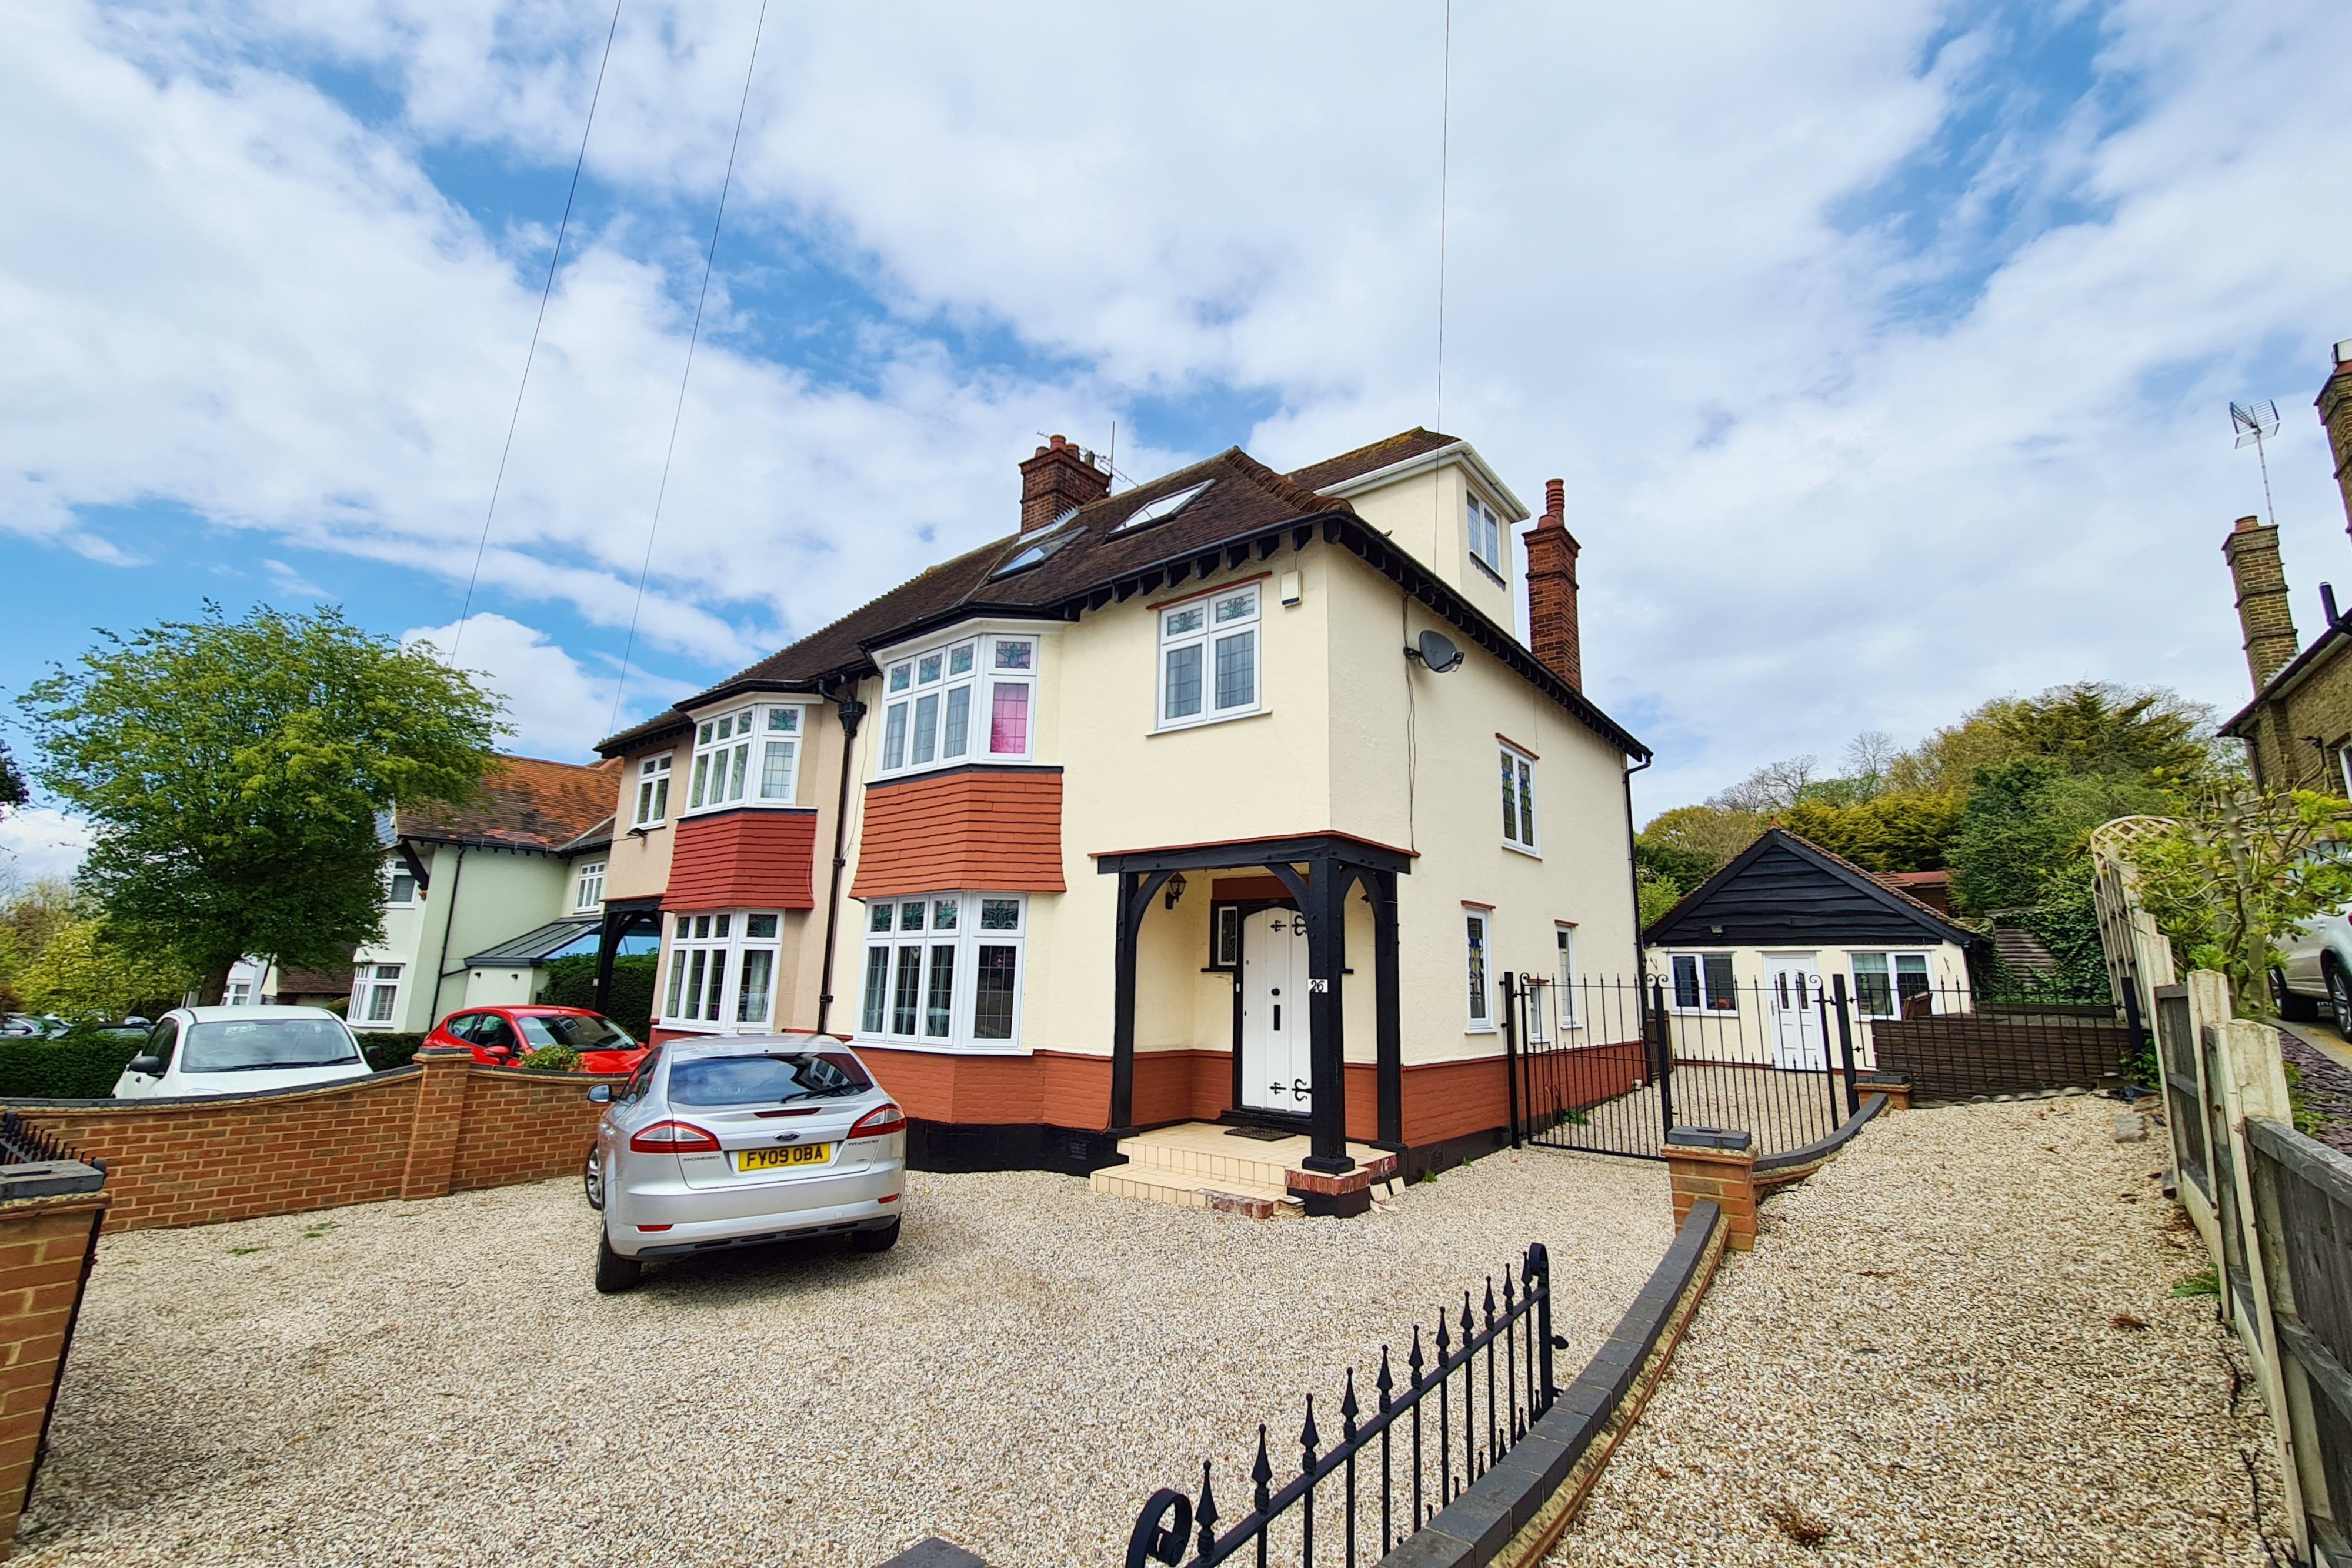 4 bed house for sale in Crown Hill, Rayleigh 0